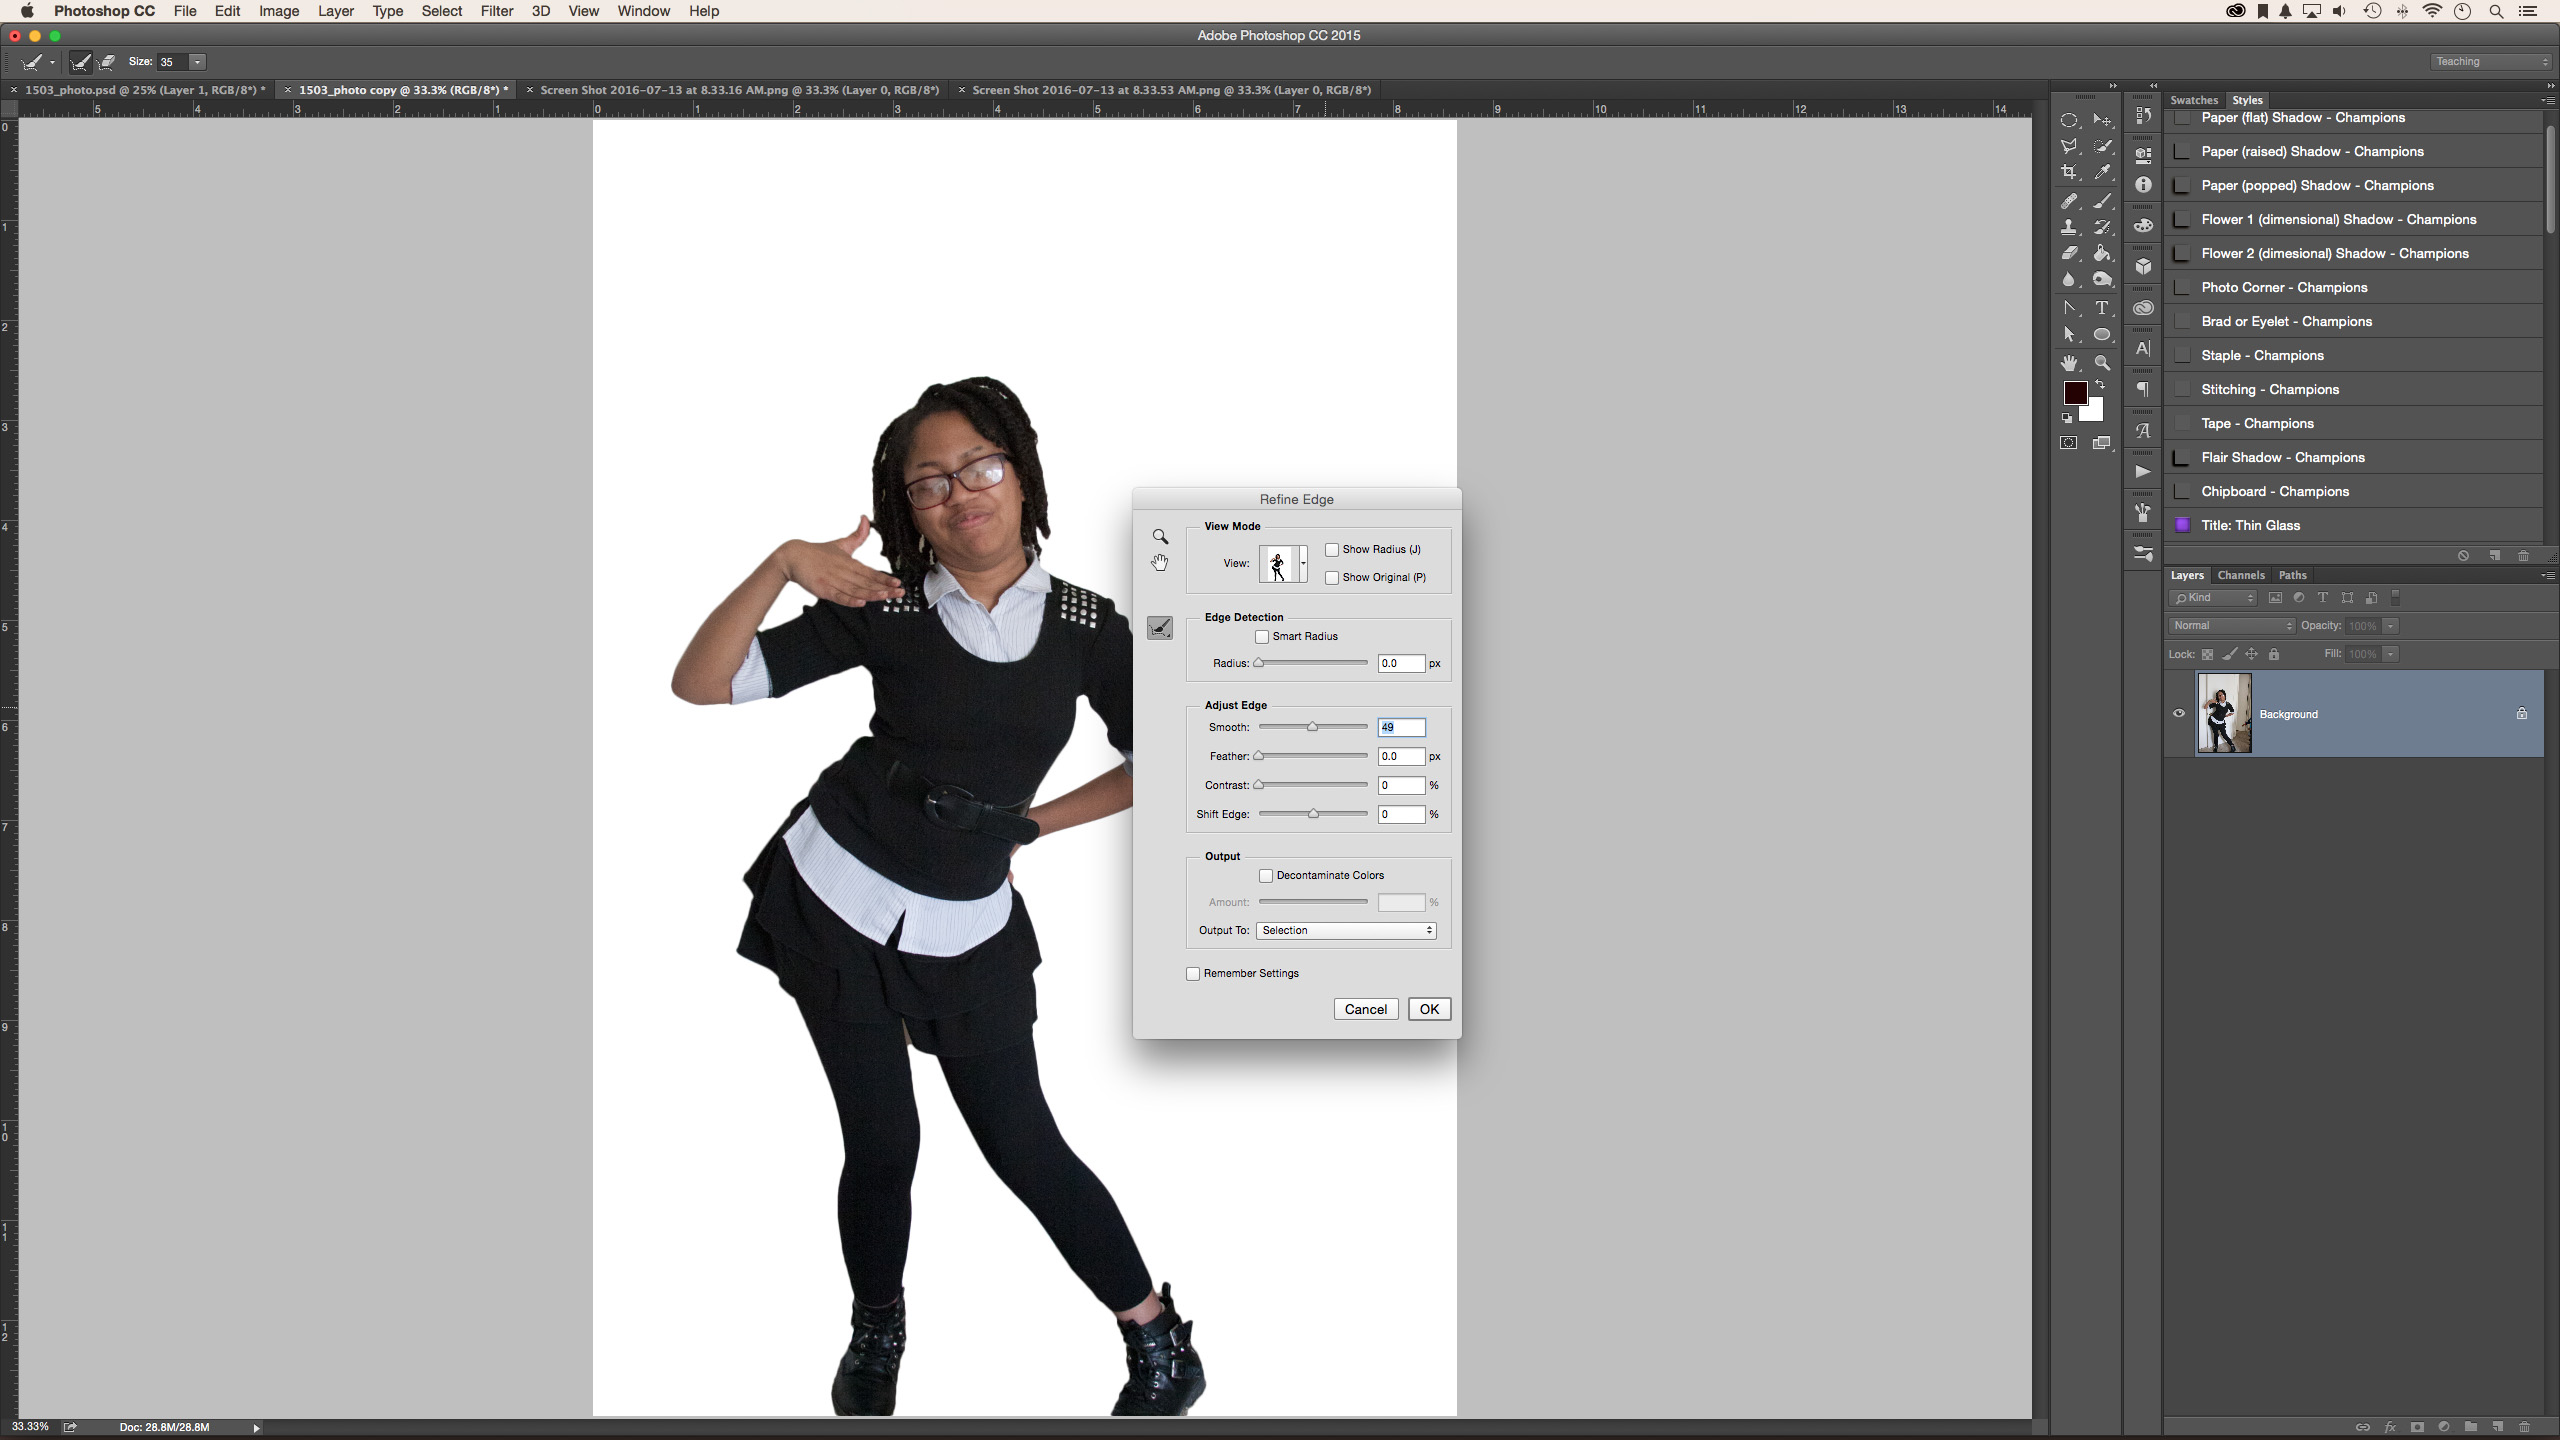 Learn how to remove the background of an image in Photoshop with the complete tutorial on the CreativeLive blog.